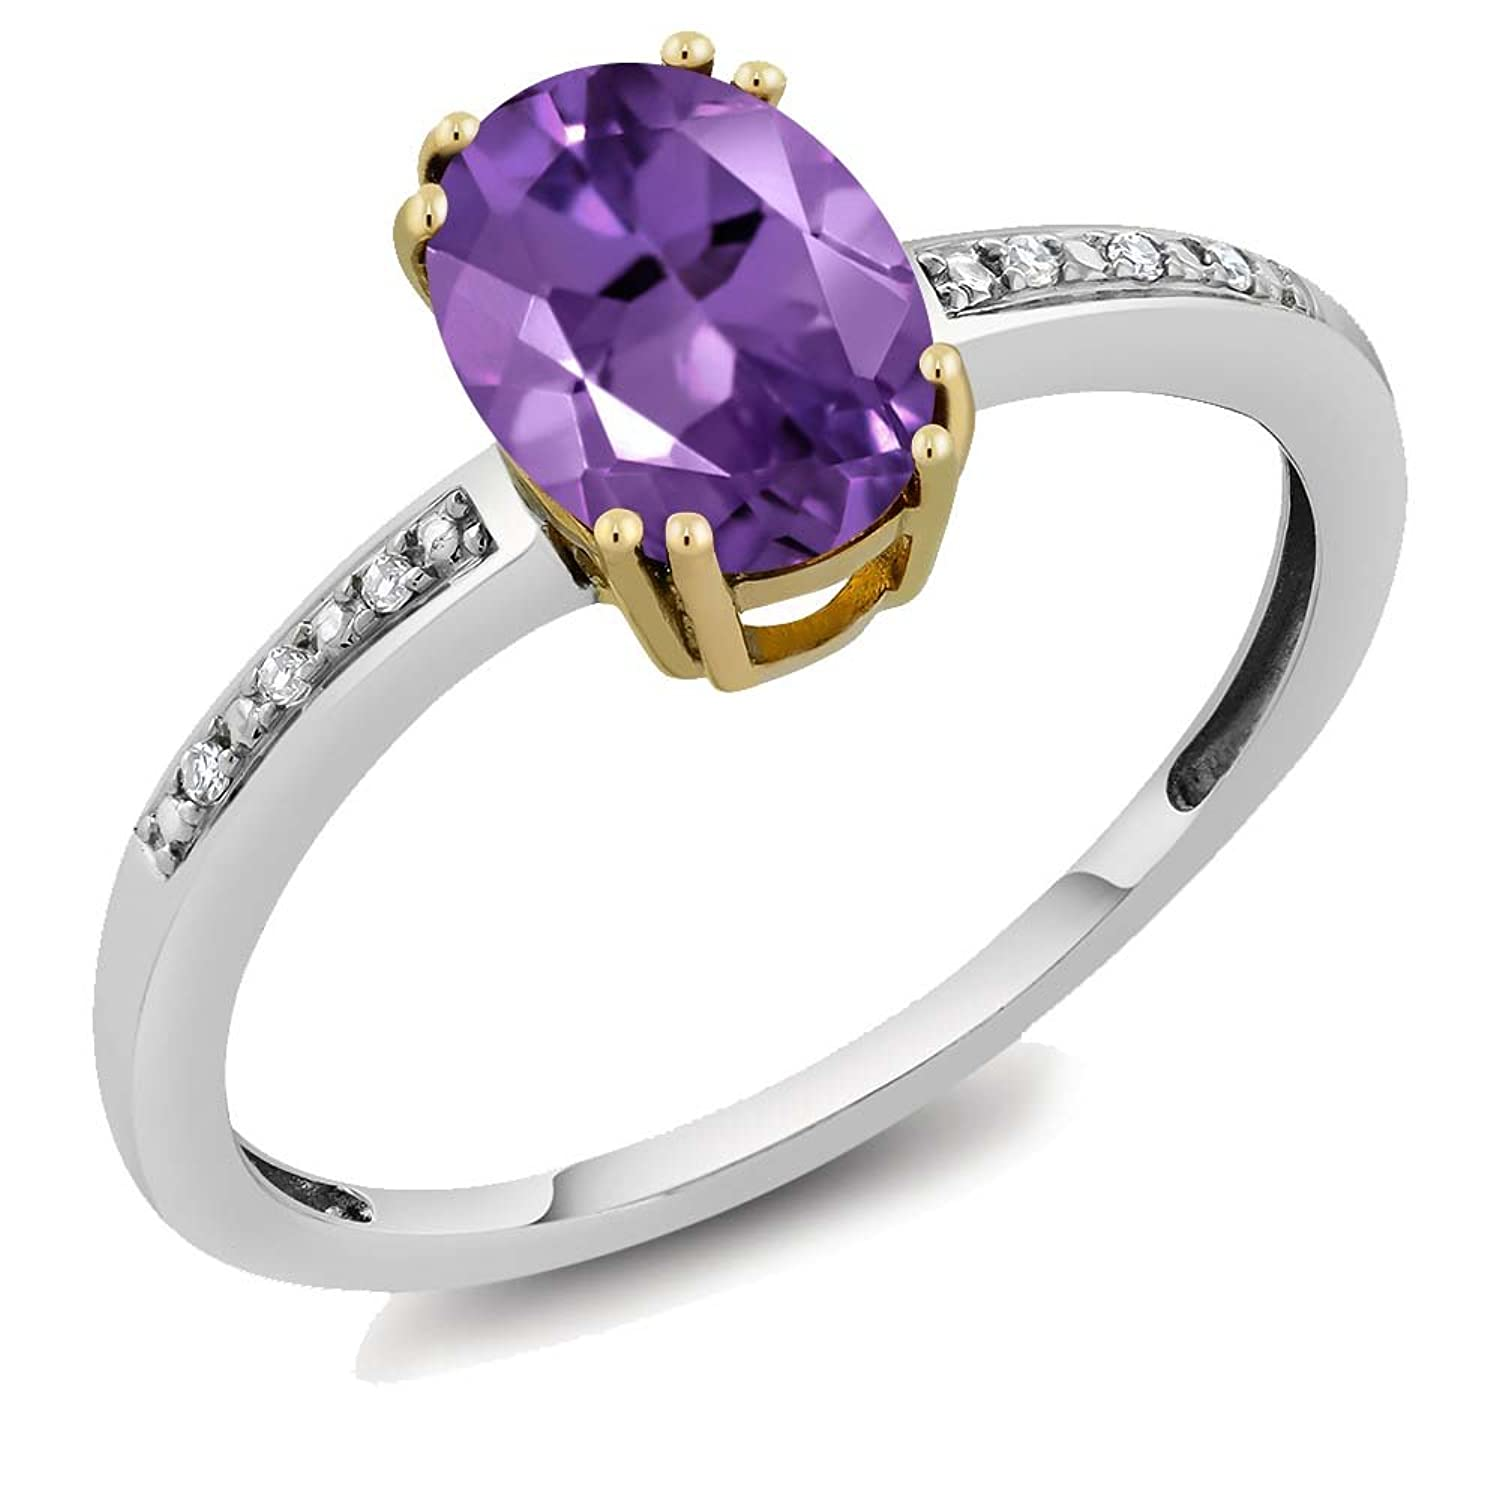 10K Solid White & Yellow Gold Genuine Purple Amethyst & White Diamond 2-Tone Women's Engagement Ring (1.00 cttw, Available in size 5, 6, 7, 8, 9)